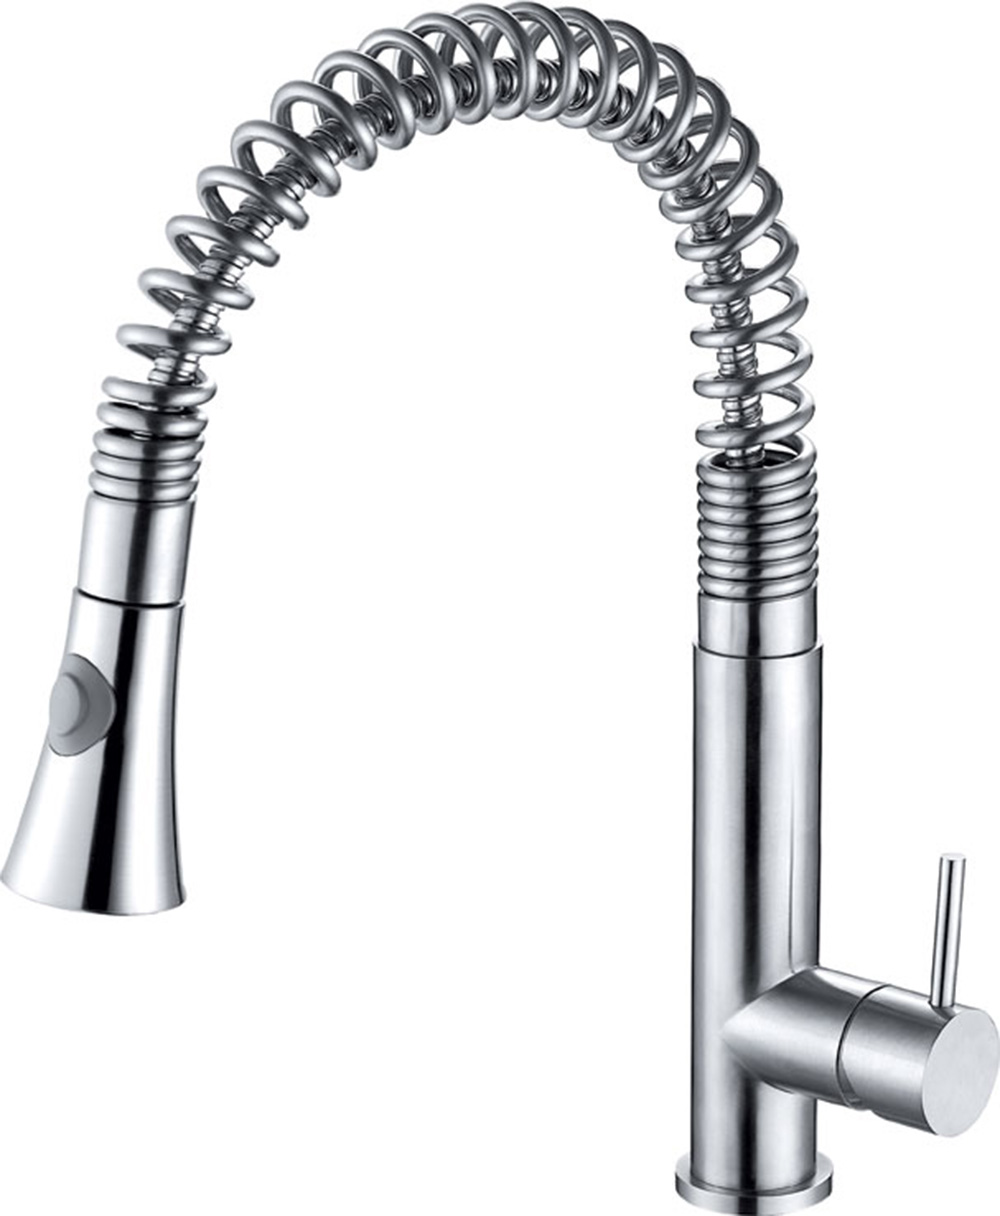 ALFI Brand AB2032 Solid Stainless Steel Commercial Spring Kitchen Faucet  With Pull Down Shower Spray